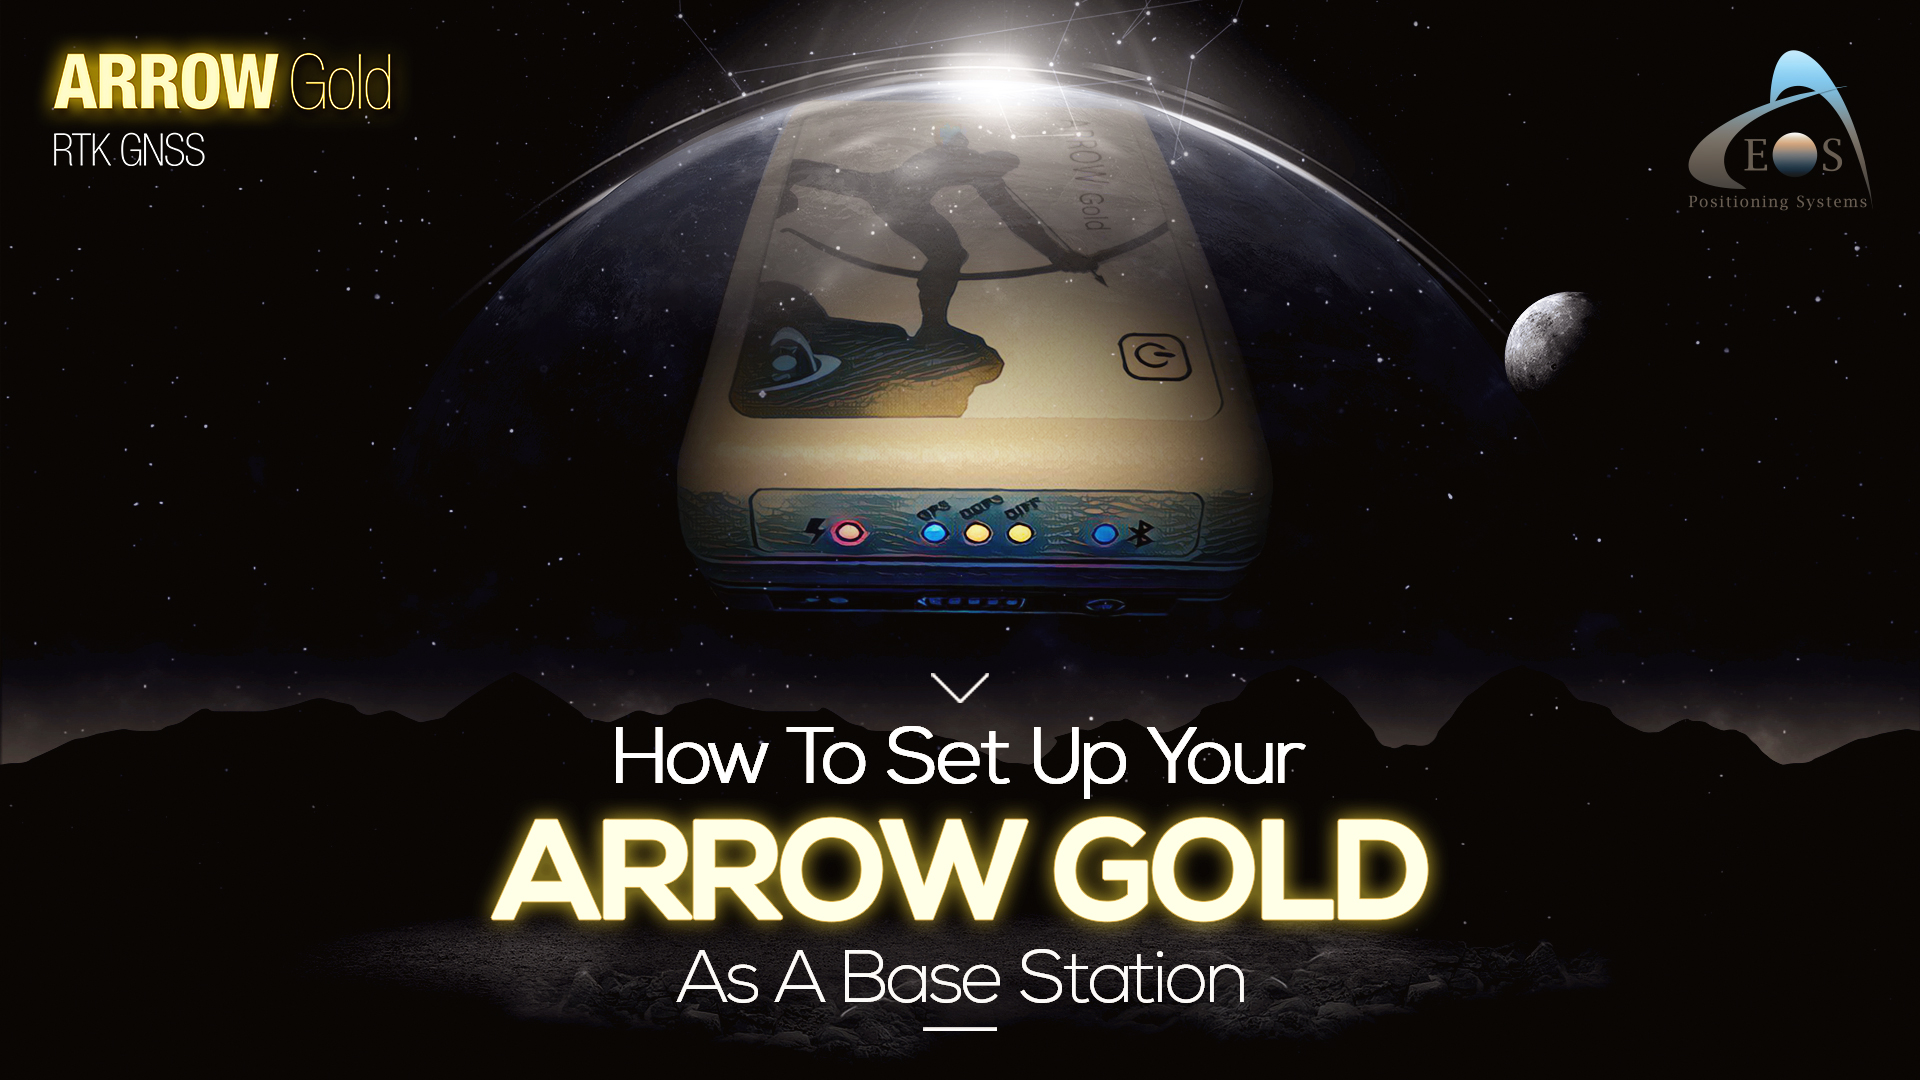 FEATURE IMAGE - ARTICLE - HOW TO SET UP YOUR ARROW GOLD AS A BASE STATION